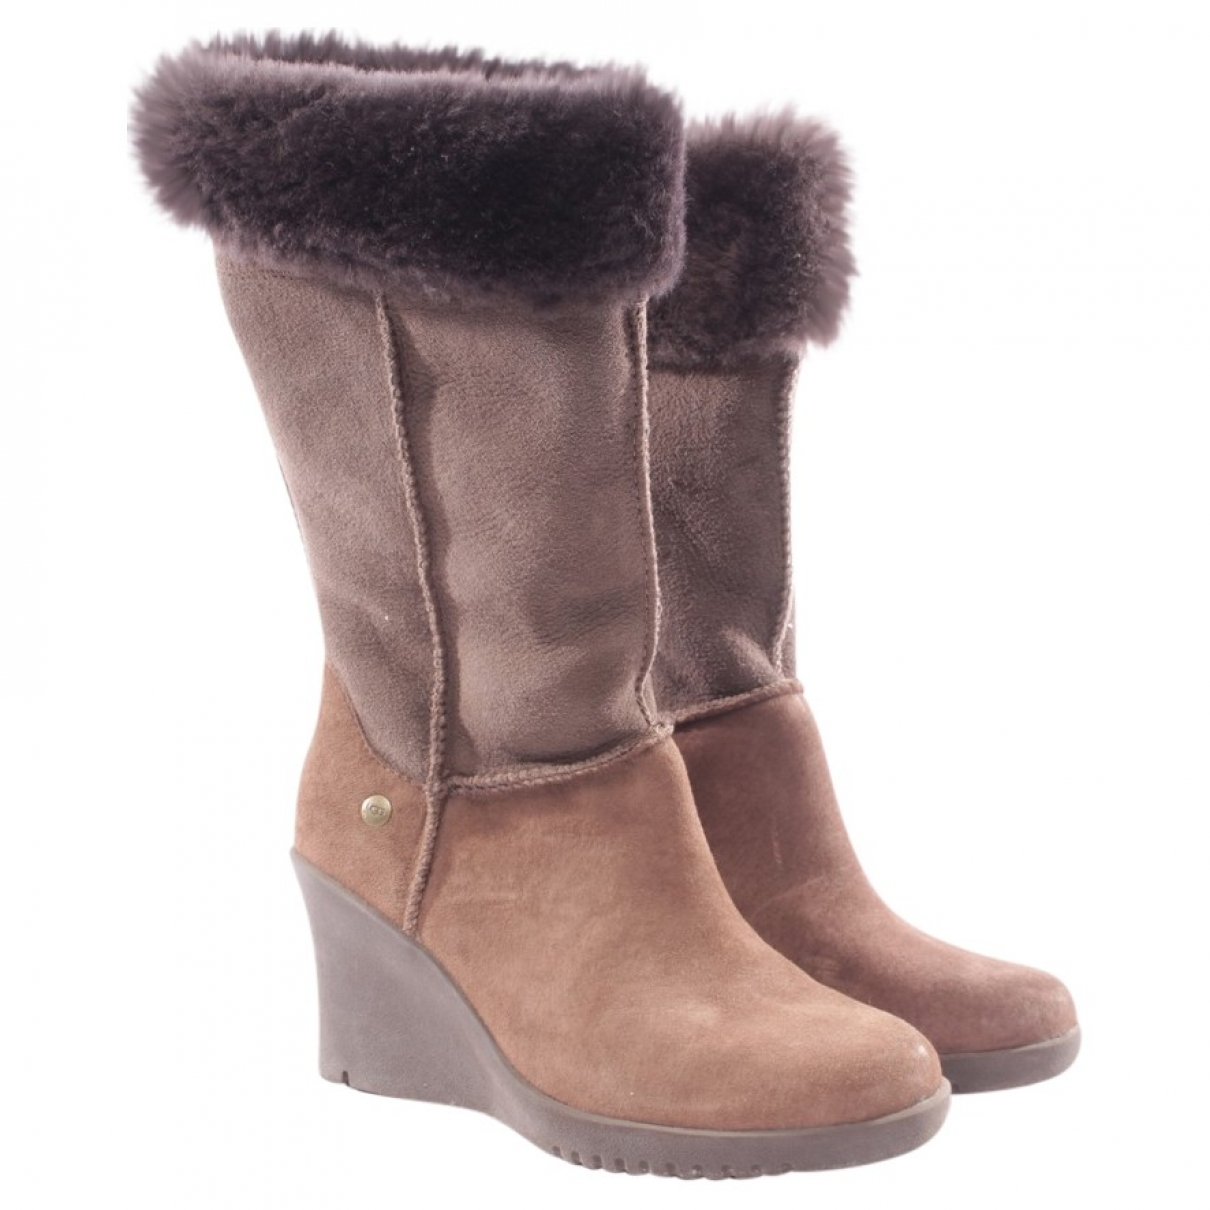 Ugg \N Brown Leather Boots for Women 36 EU